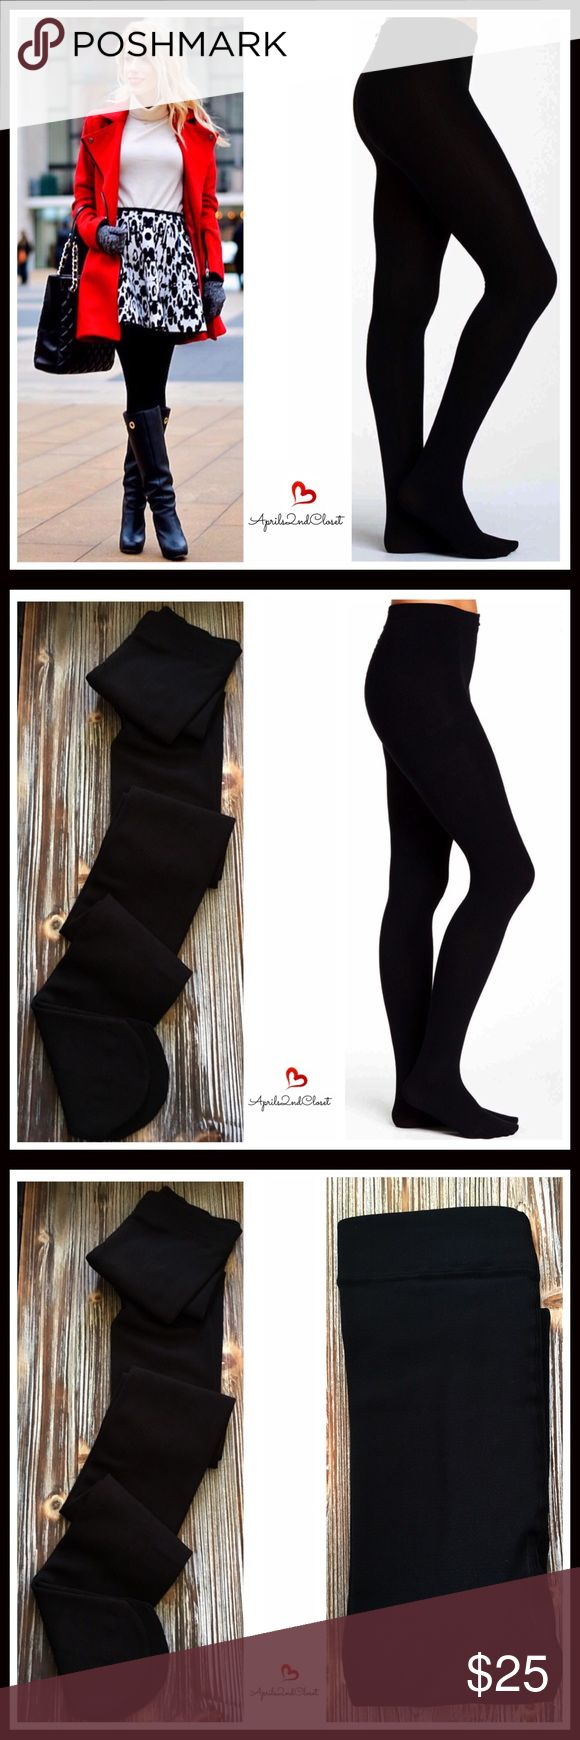 "COZY FLEECE LINED TIGHTS FLEECE LINED TIGHTS   COLOR- JET BLACK  * Super soft, plush & comfortable * High quality & well made * Designed for layering * Stretch-to-fit SIZING- * XS/S = sizes 0-6, 4'10""- 5' 4"", 80-120 LBS * S/M = sizes 2-8, 4'10""-5'6"", 90-135 LBS * M/L = sizes 8-14, 5'4""-6'0"", 130-175 LBS * L/XL = sizes 10-16, 5'6""-6'0"", 170-225 LBS  FABRIC- 94% polyester, 6% spandex; Machine wash cold  * NO TRADES * BUNDLE DISCOUNTS  * OFFERS CONSIDERED   SEARCH # sweater winter fall…"